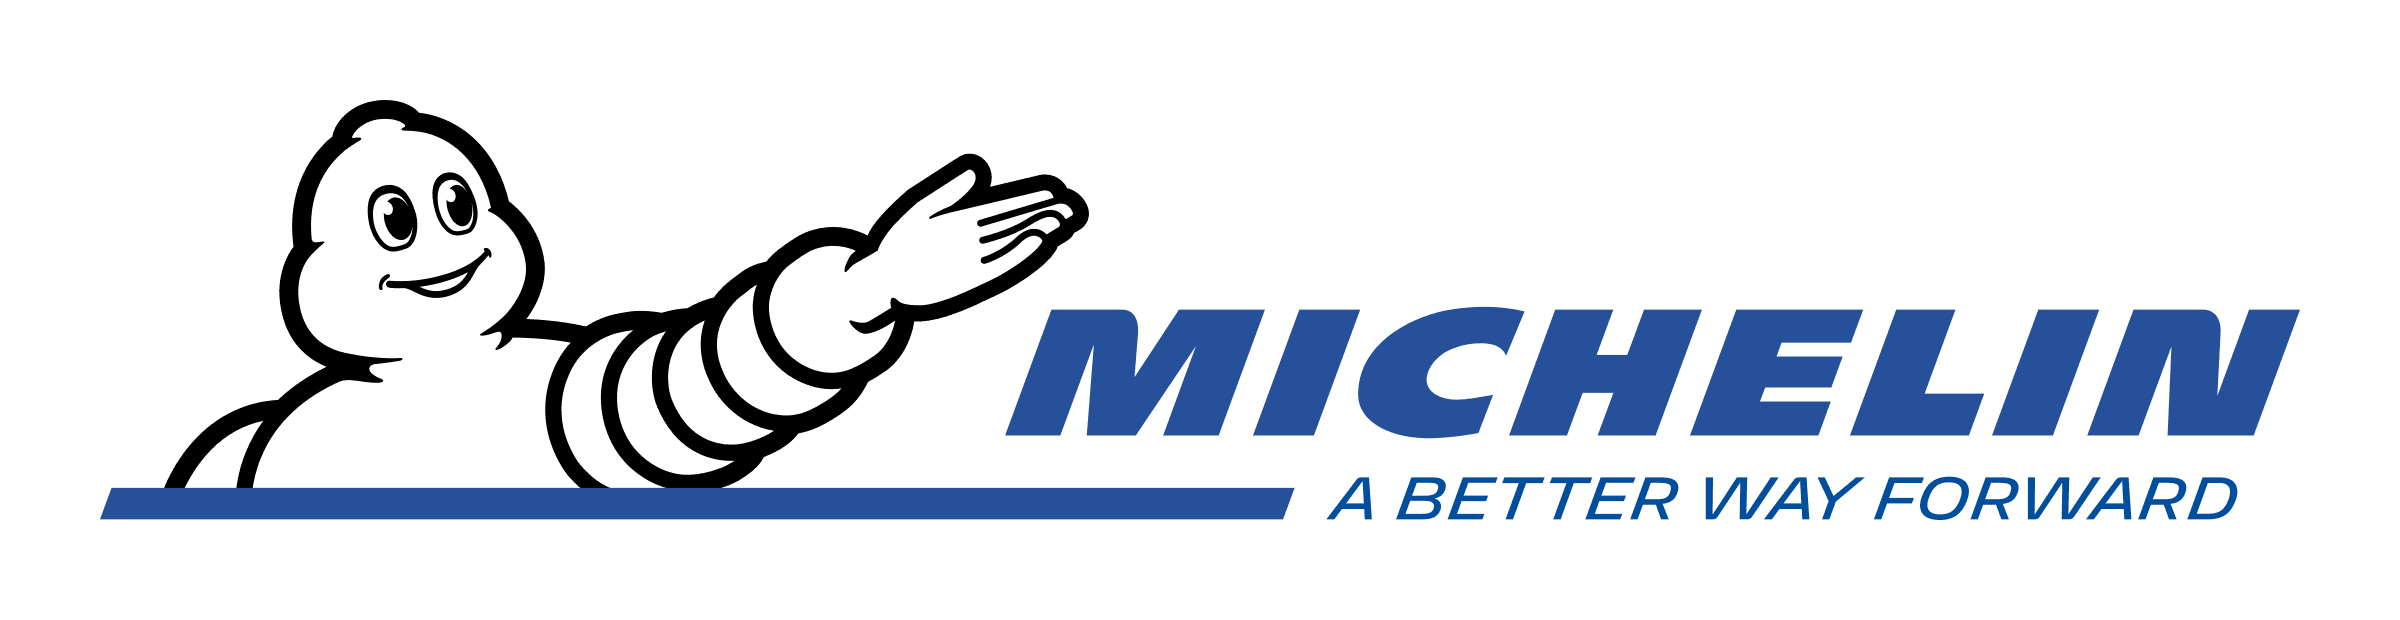 michelin-logo-png-transparent